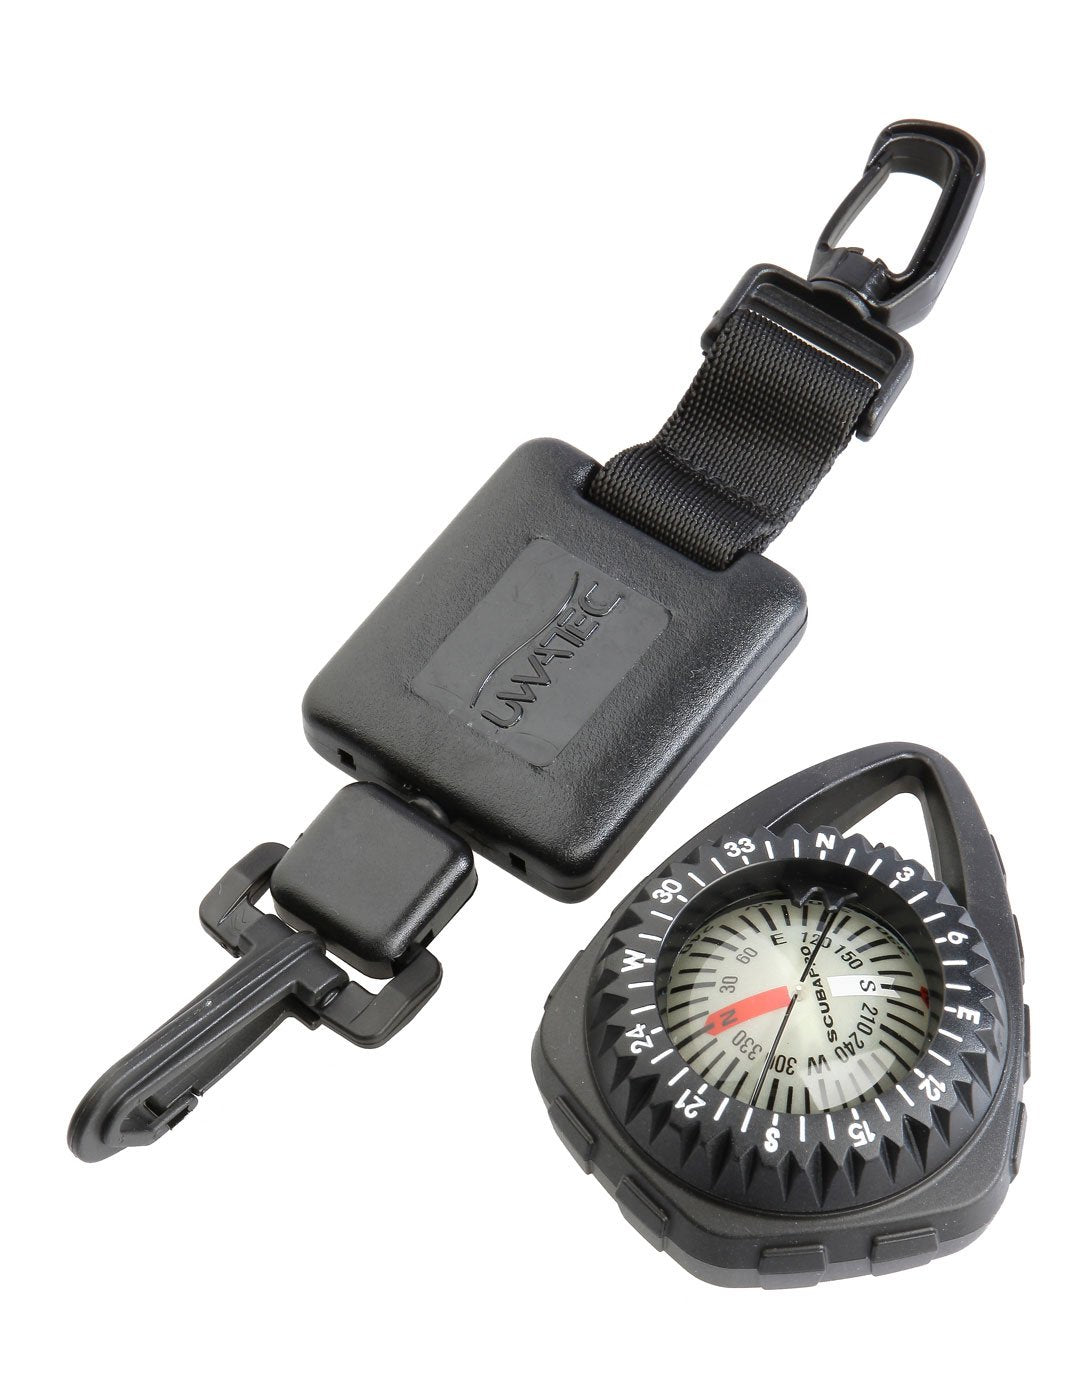 Image of Scubapro FS2 Compass and Retractor